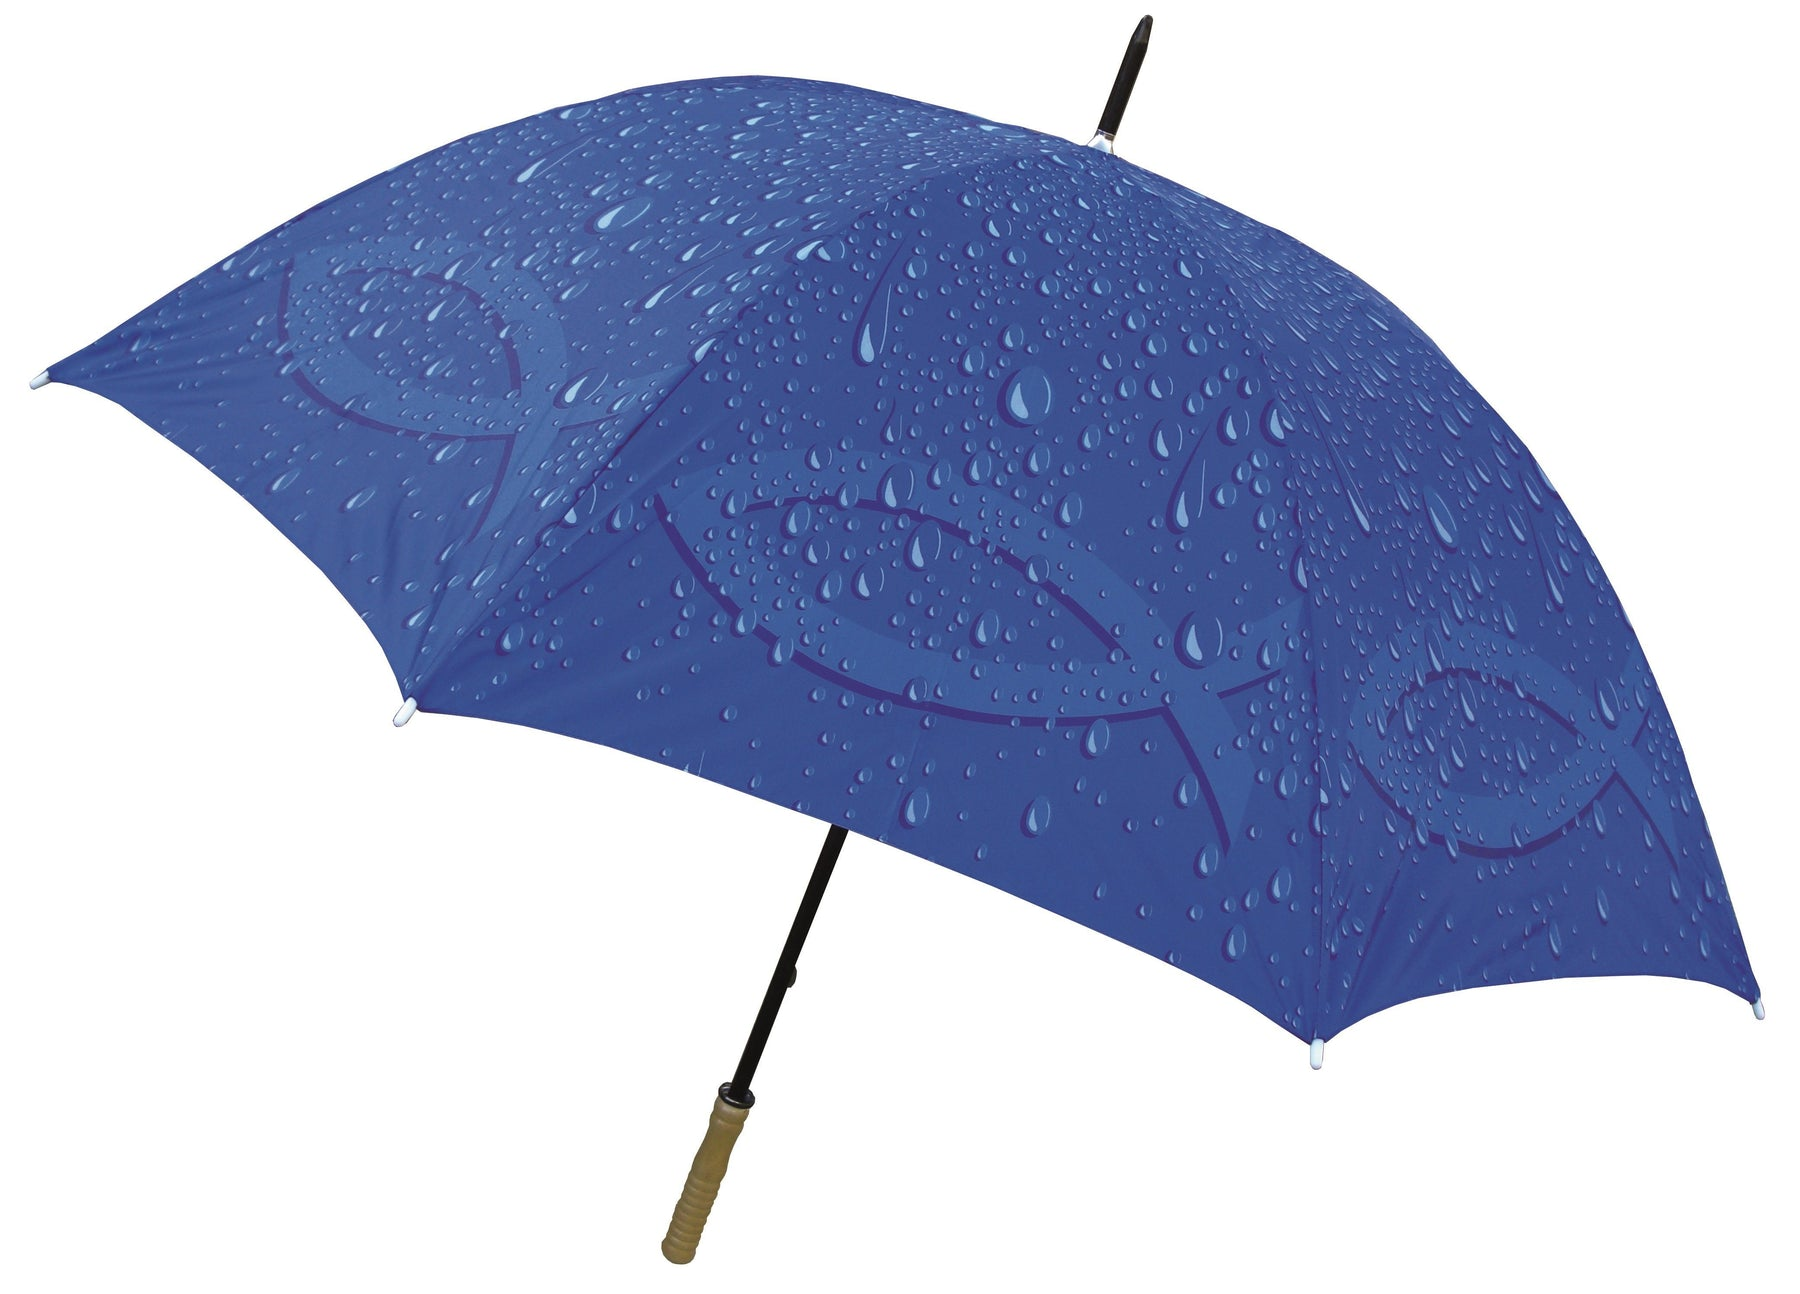 Christian Umbrella - Golf Umbrella Raindrop's with Christian Fish - Love the Lord Inc